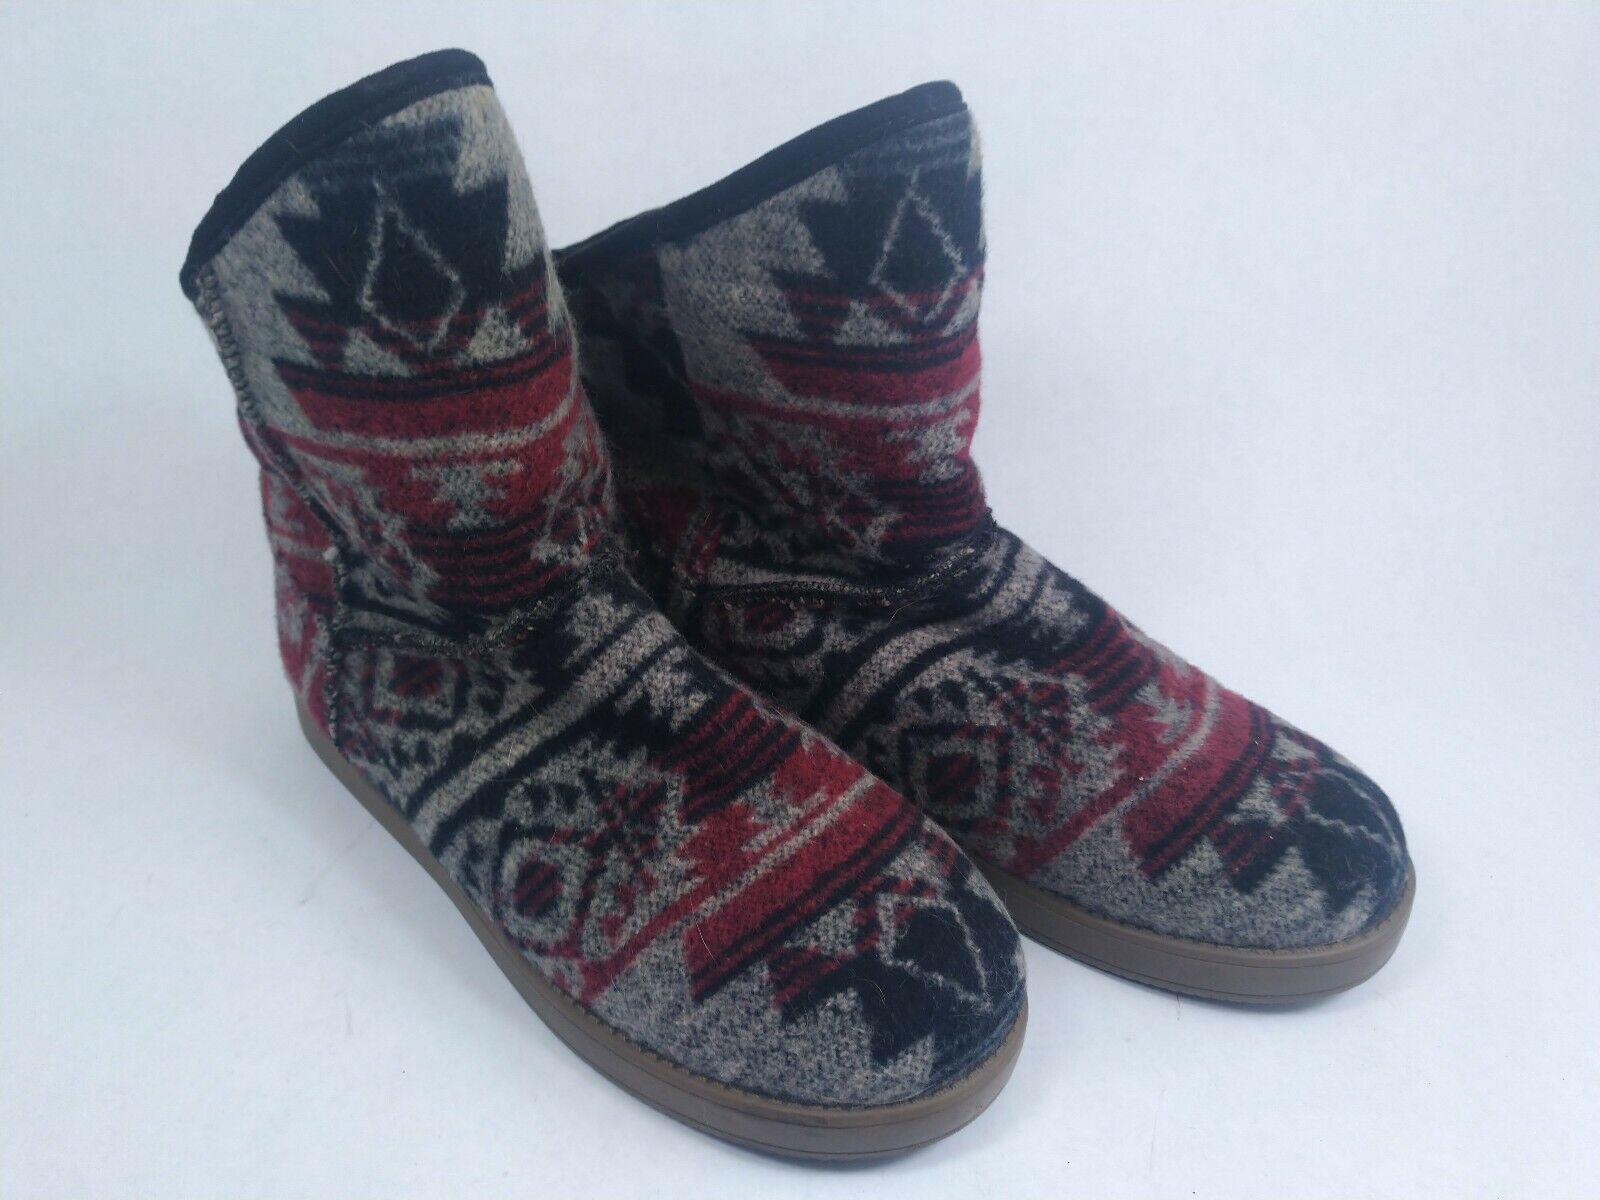 INDIGO RD. - Aylee - Women's Cold Weather Boots, Red Multi, Size 11M shoes